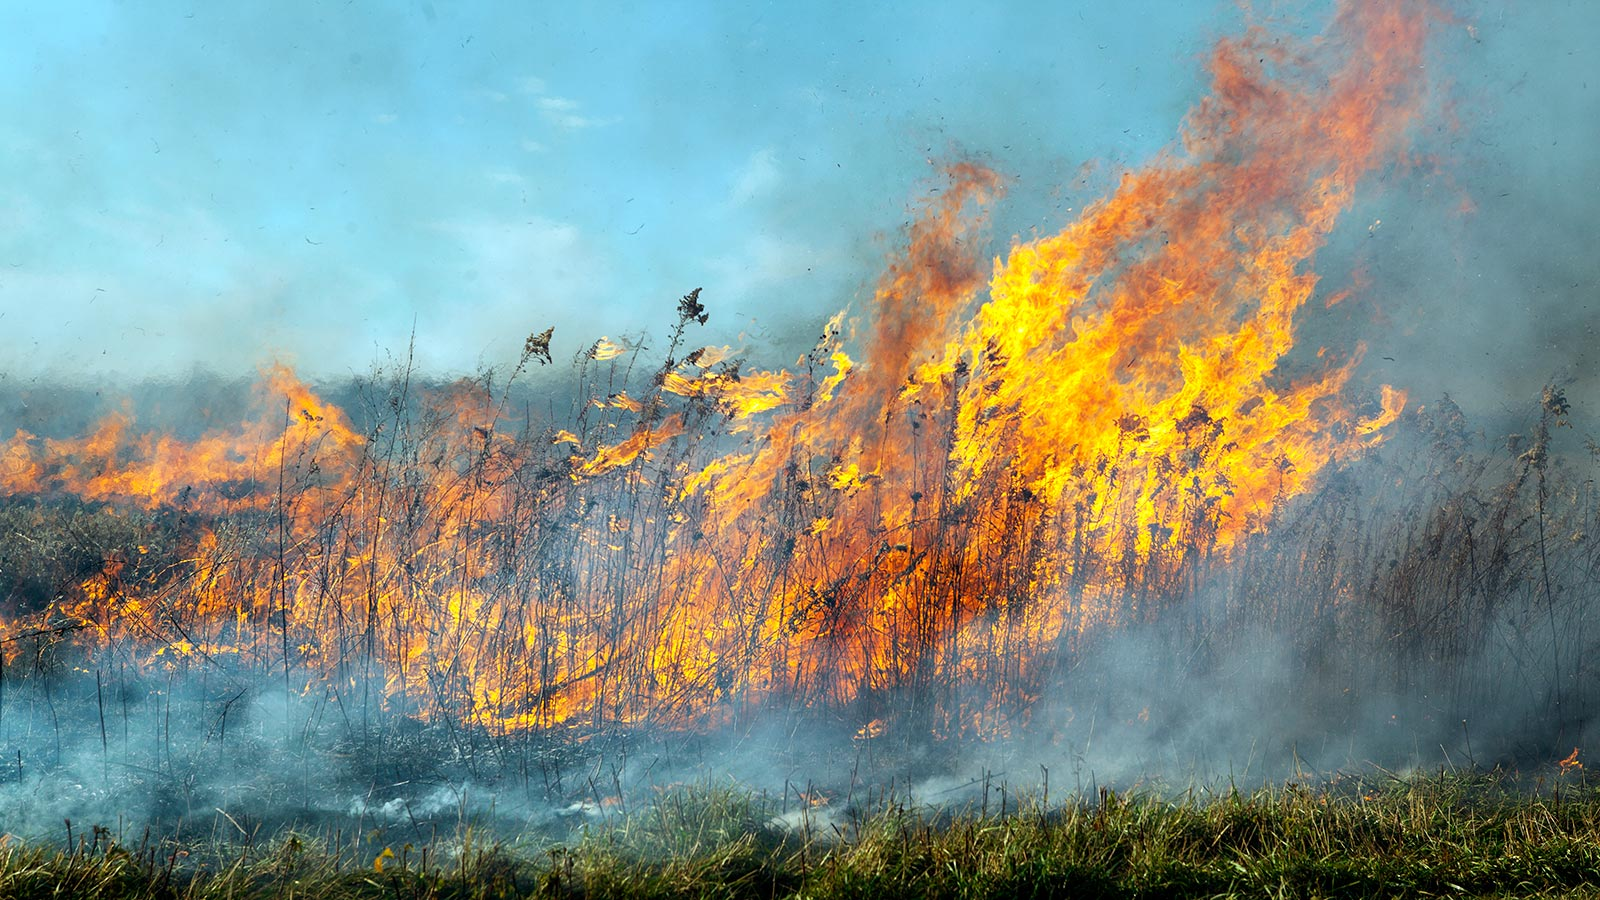 Controlled burns help restore the natural prairie habitat. Photo: Marty Murphy